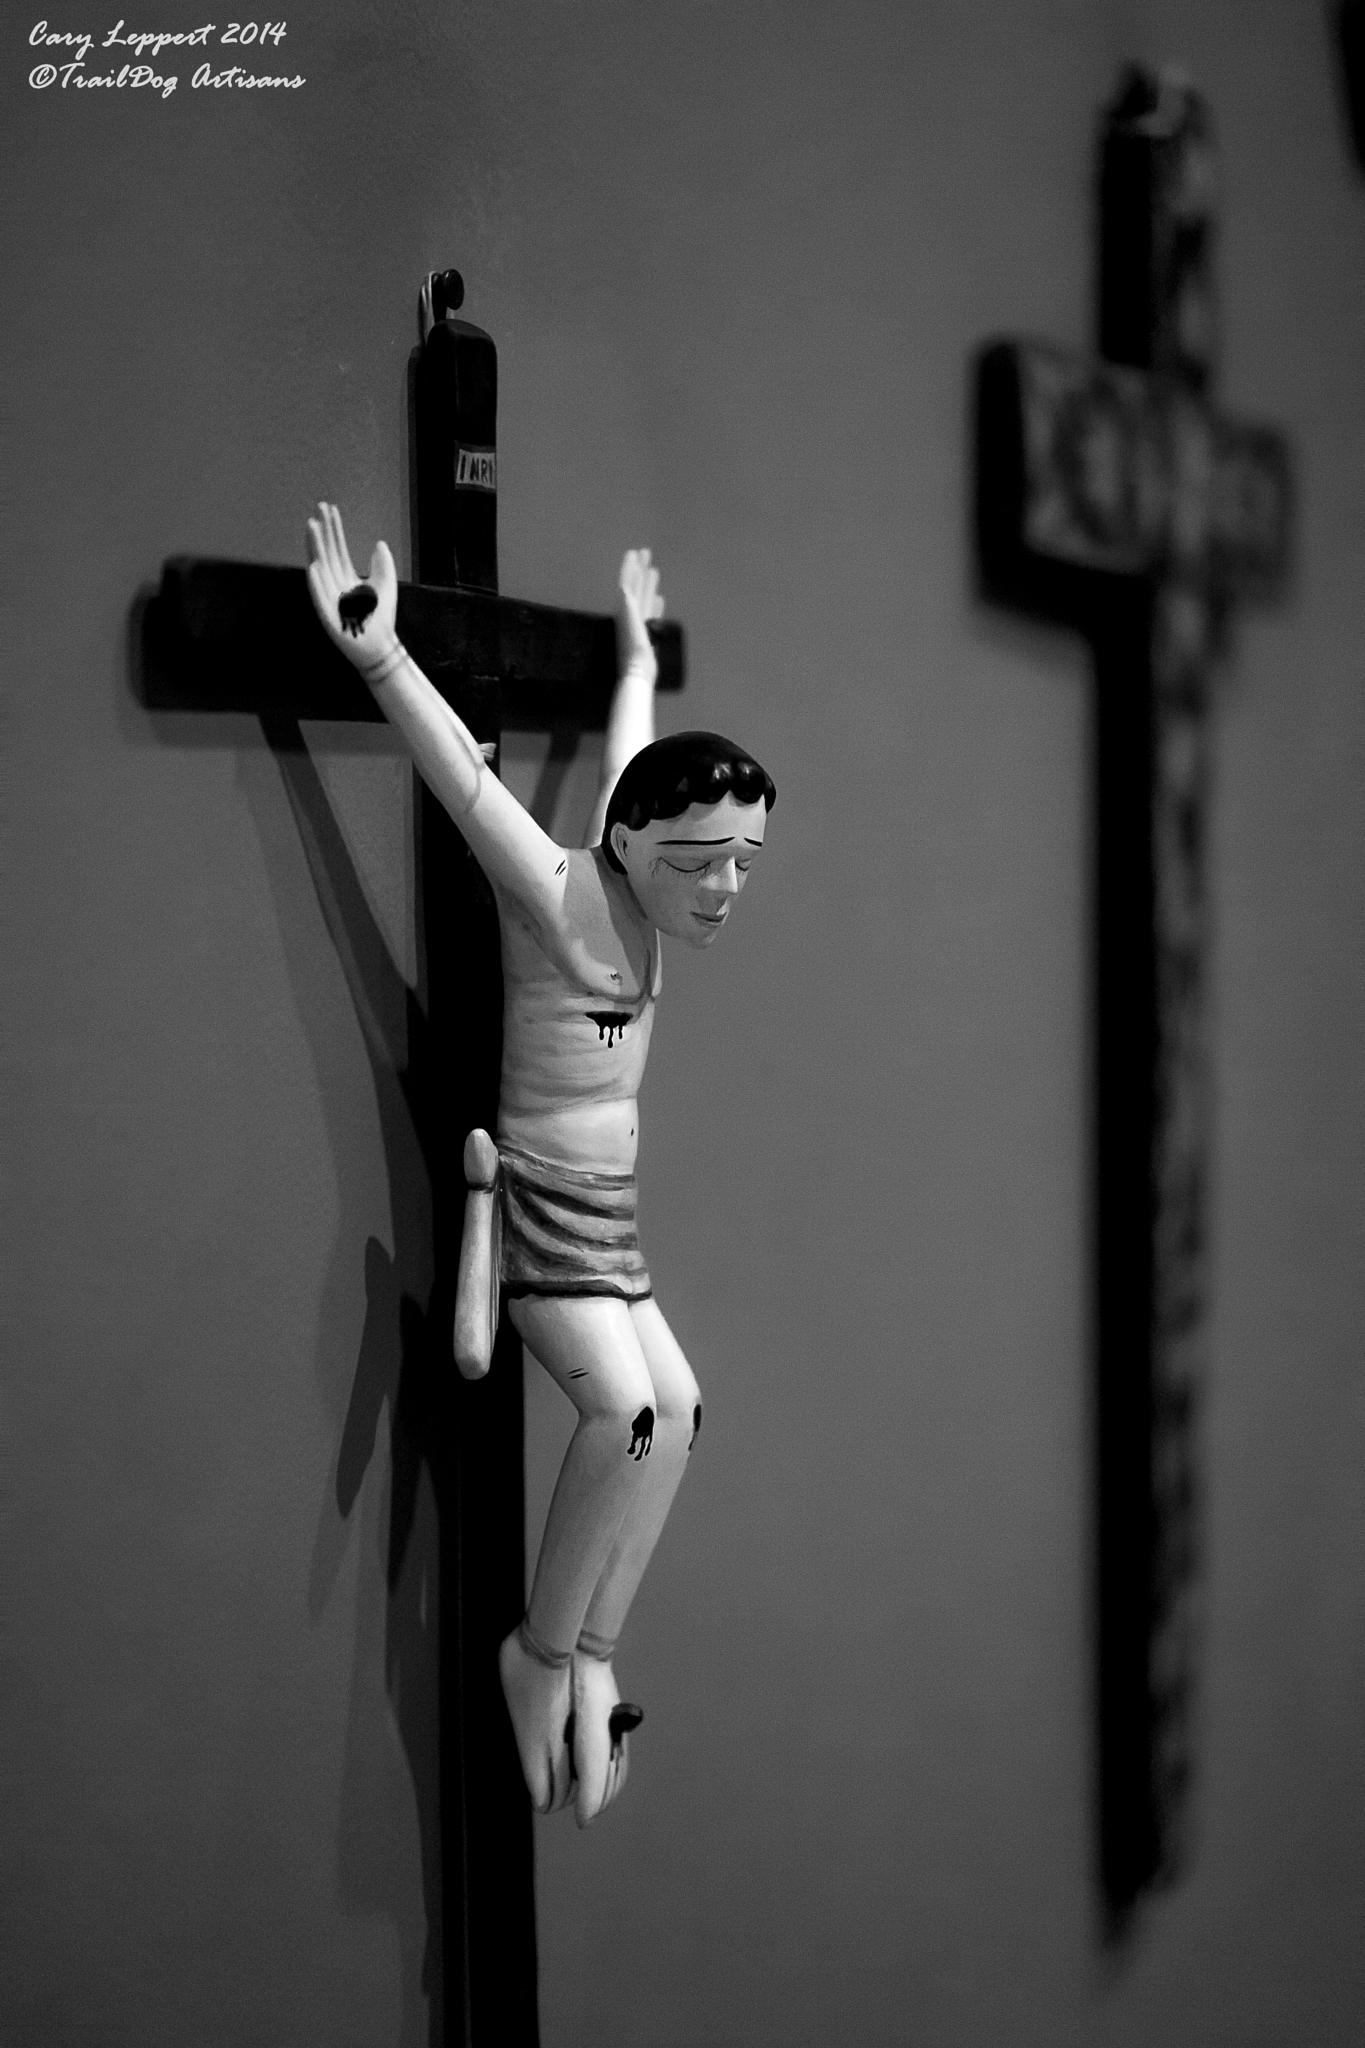 Spanish Figurine of Jesus on the Cross by Cary Leppert